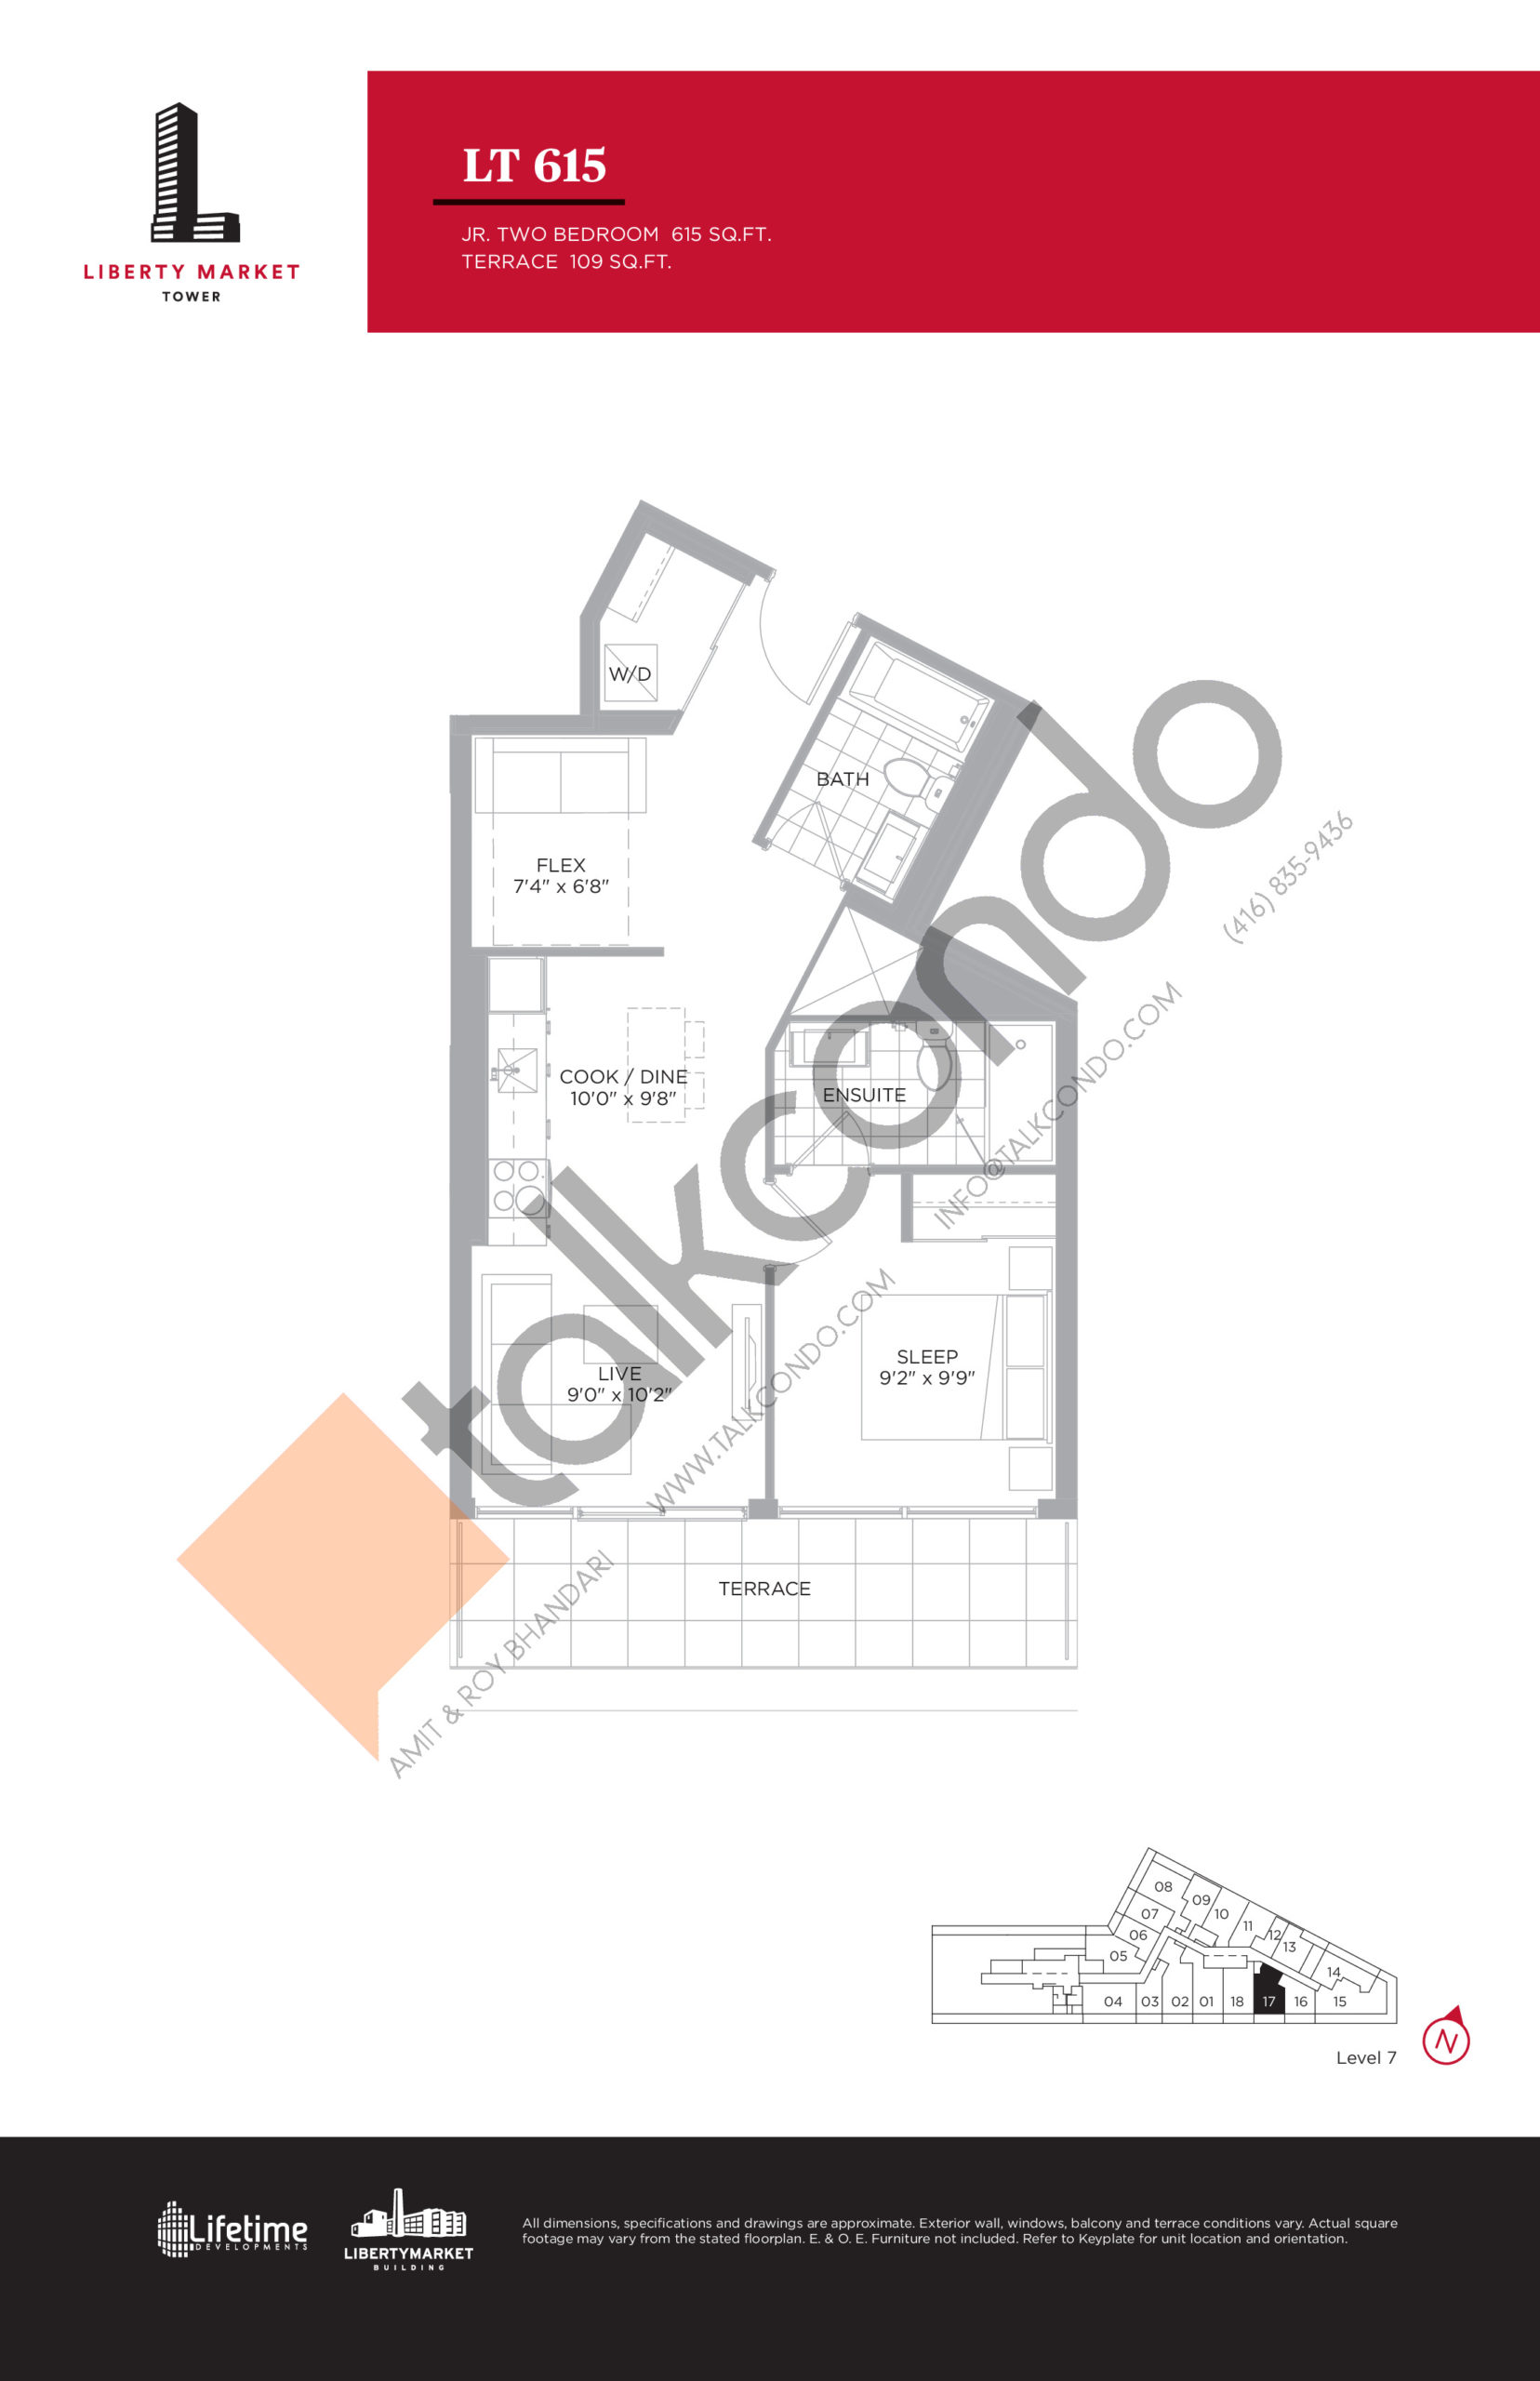 LT 615 - Terrace Collection Floor Plan at Liberty Market Tower Condos - 615 sq.ft